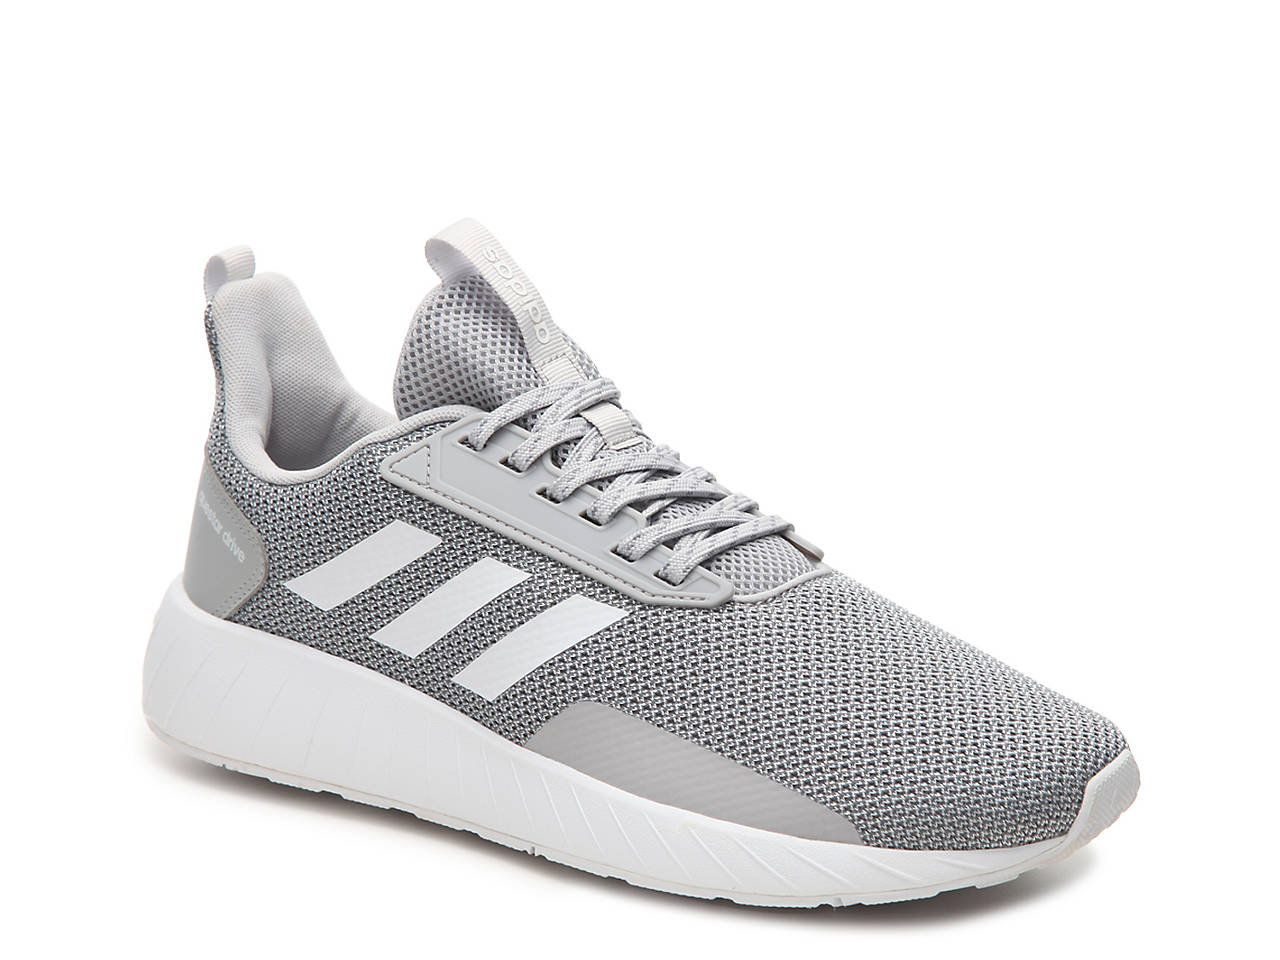 a24c75b74 adidas Questar Drive Sneaker - Men s Men s Shoes